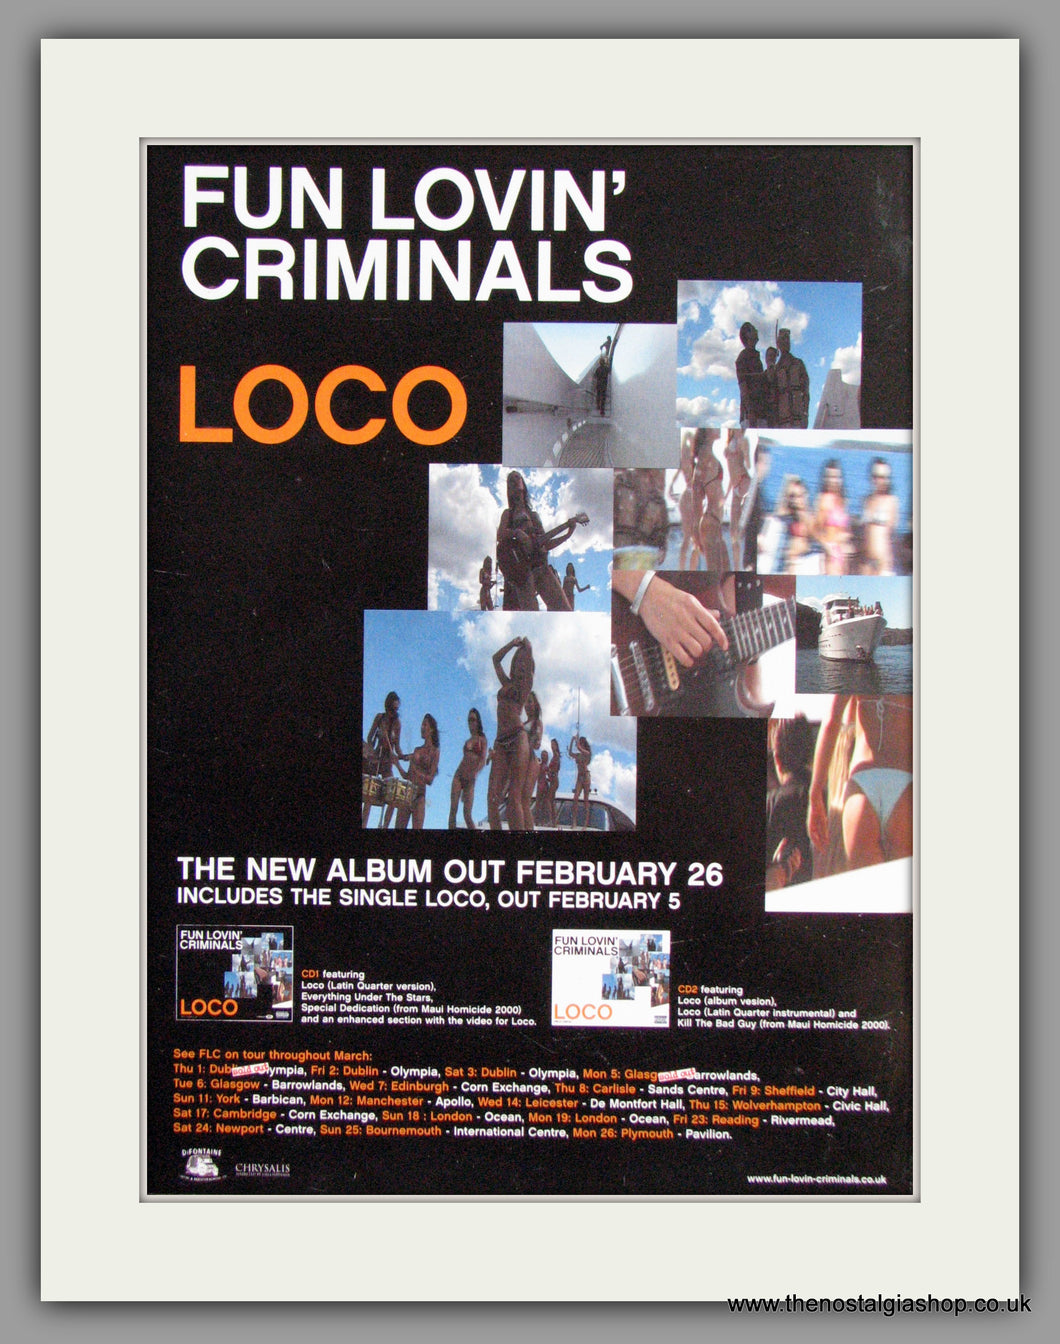 Fun Lovin' Criminals - Loco+Tour Dates. Original Advert 2001 (ref AD50278)